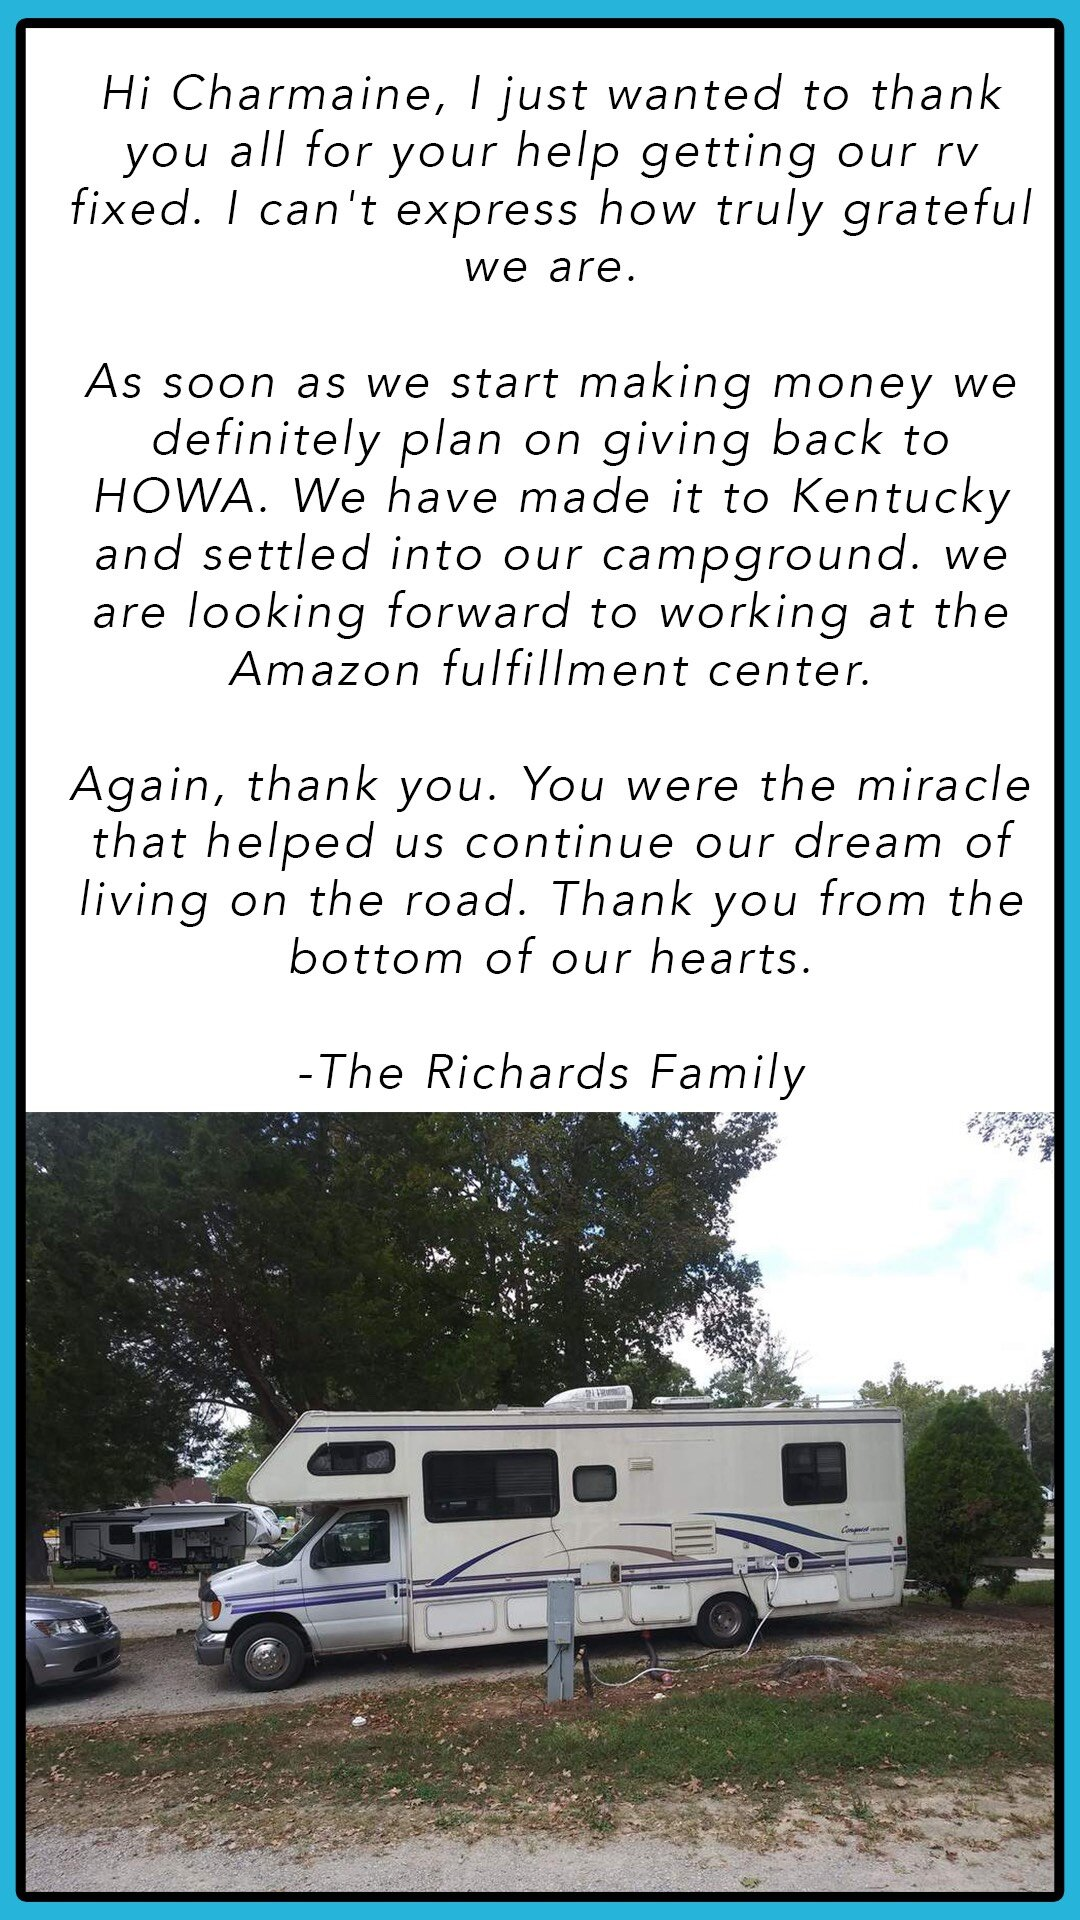 A positive example of how HOWA has helped people in need